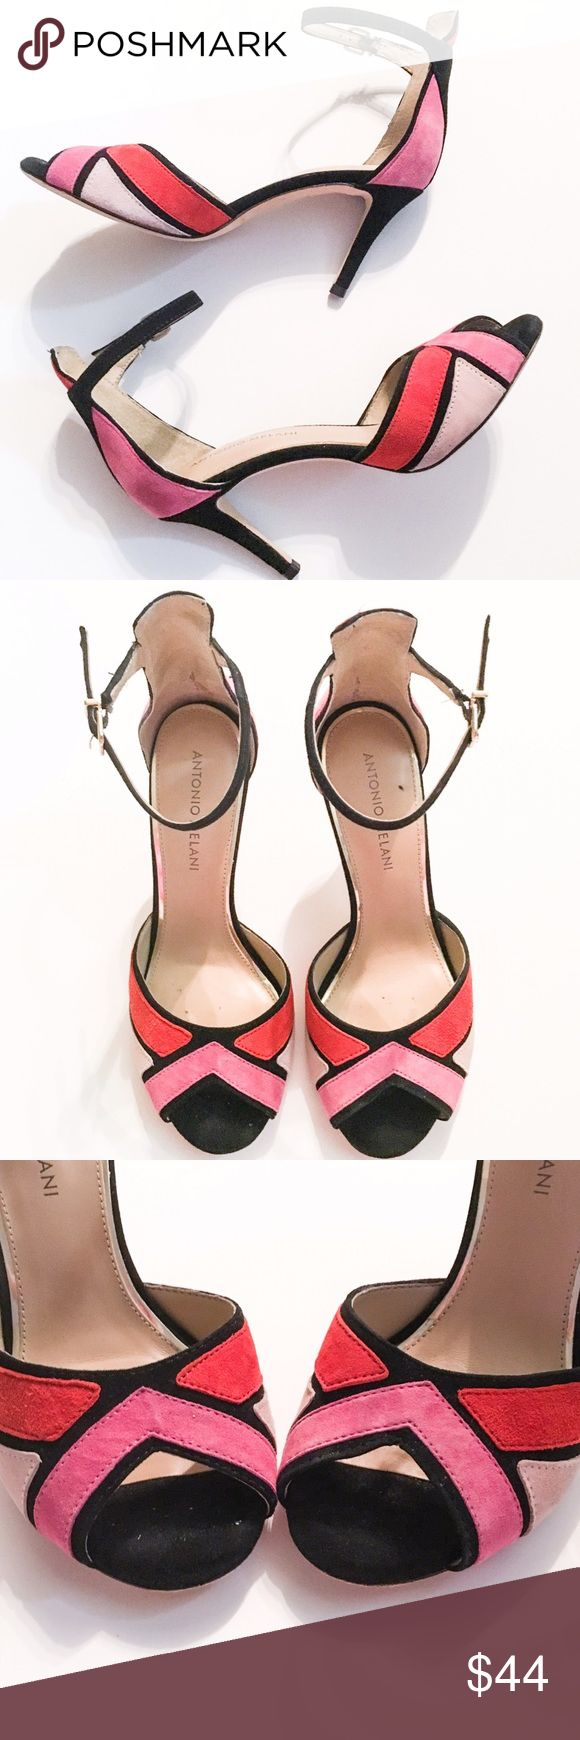 Antonio Melani Geometric Suede Peep Toe Heels Fabulous pink, red and black suede peep toe heels with ankle straps from Antonio Melani! These beautiful shoes are in good preloved condition and show some minor signs of wear as shown in the pictures, but there are no apparent flaws and lots of life left! ANTONIO MELANI Shoes Heels